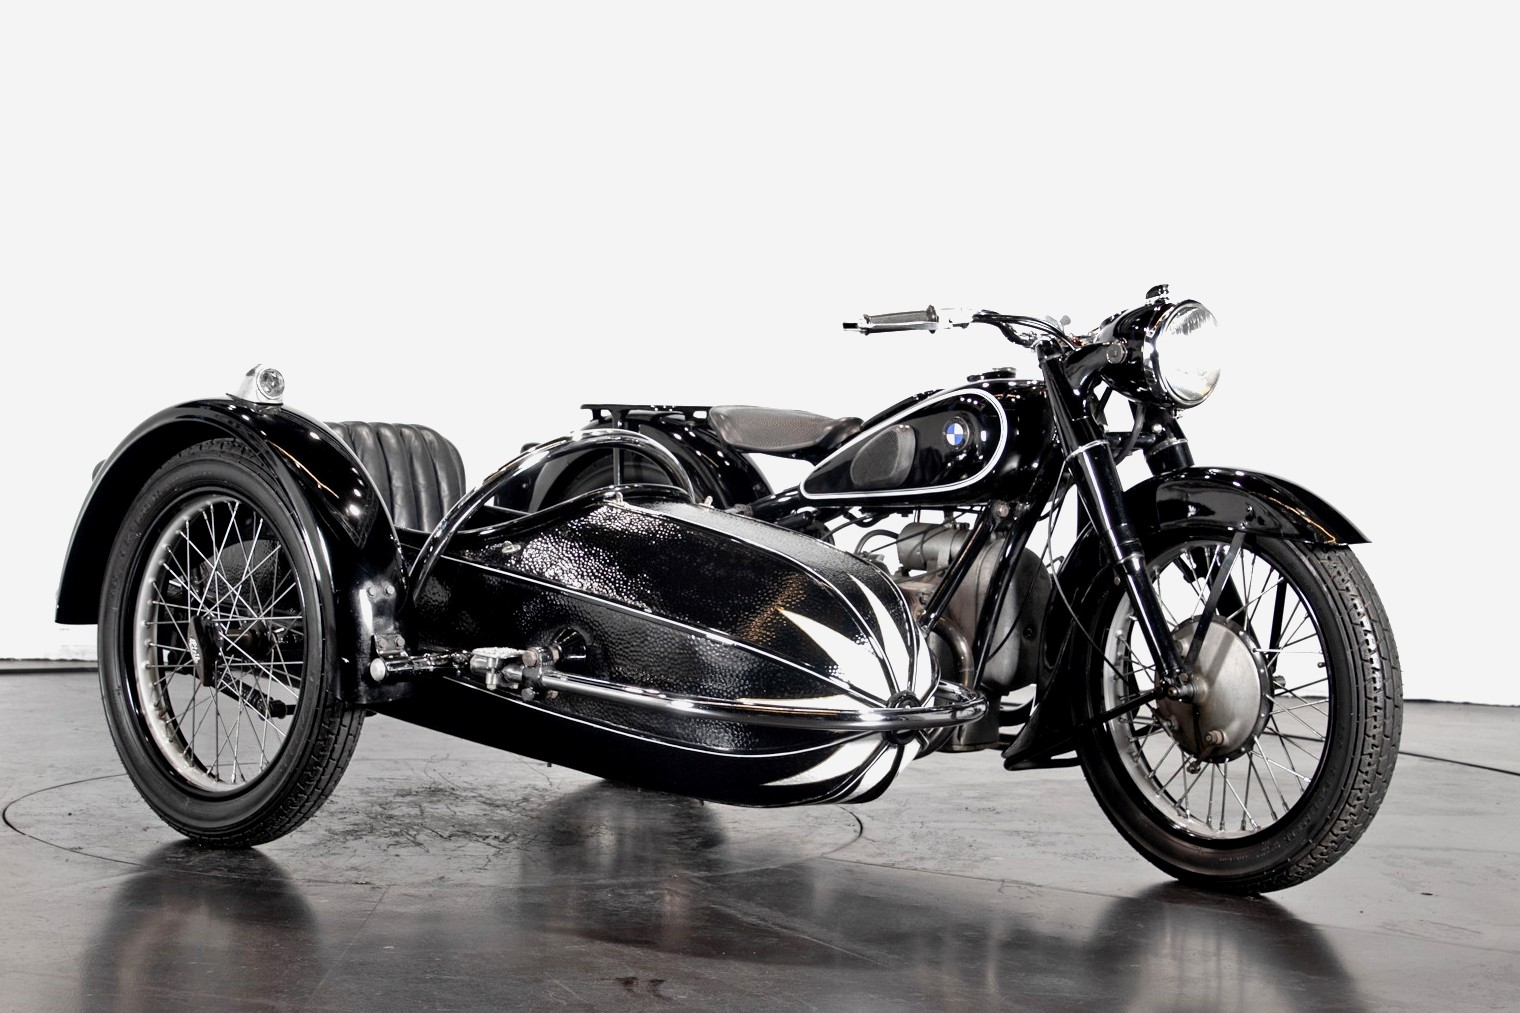 Vintage (used) motorcycles' values: BMW sidecar, approx. $30,845 for sale